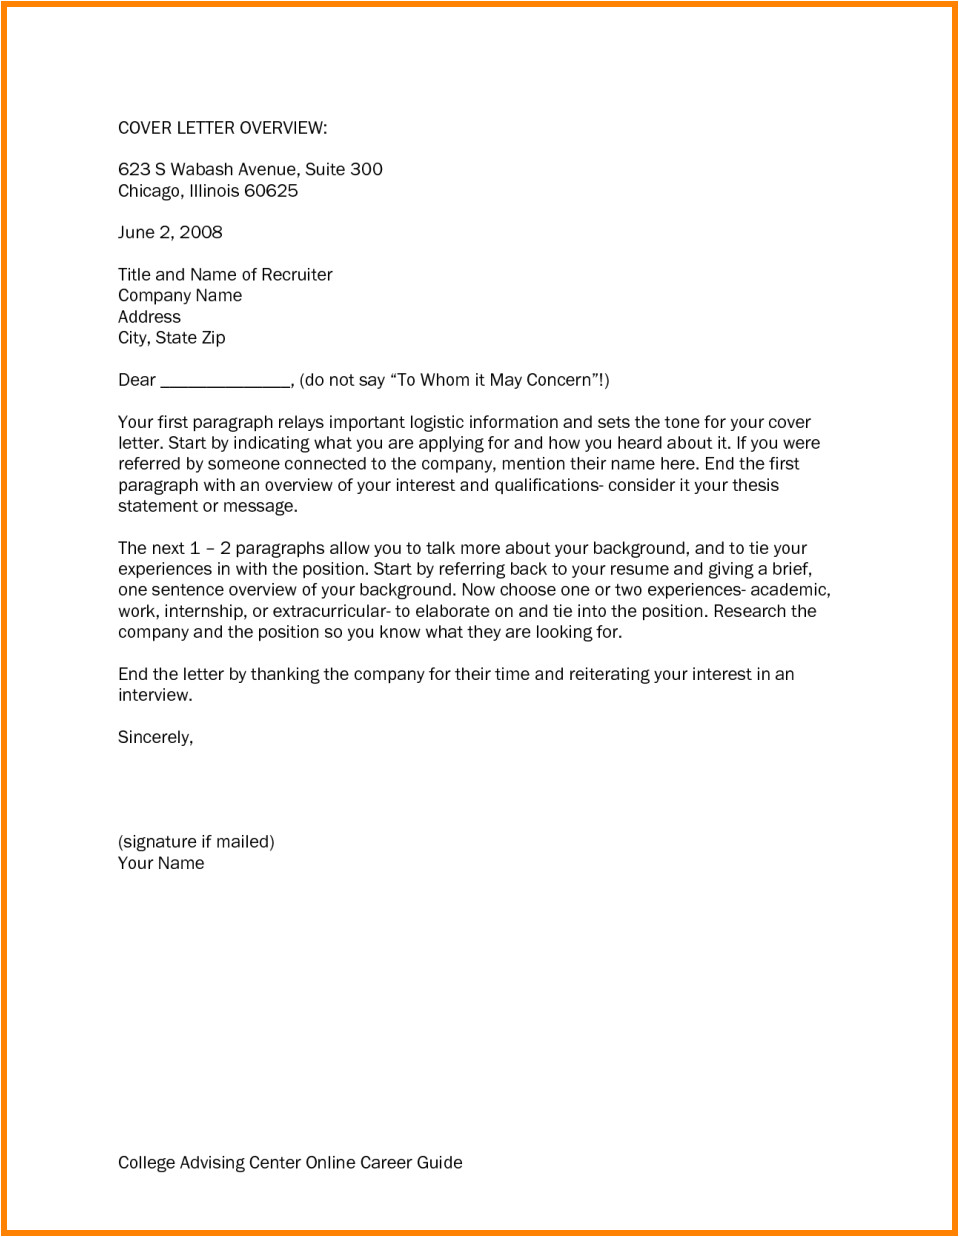 4 strong cover letter opening statements